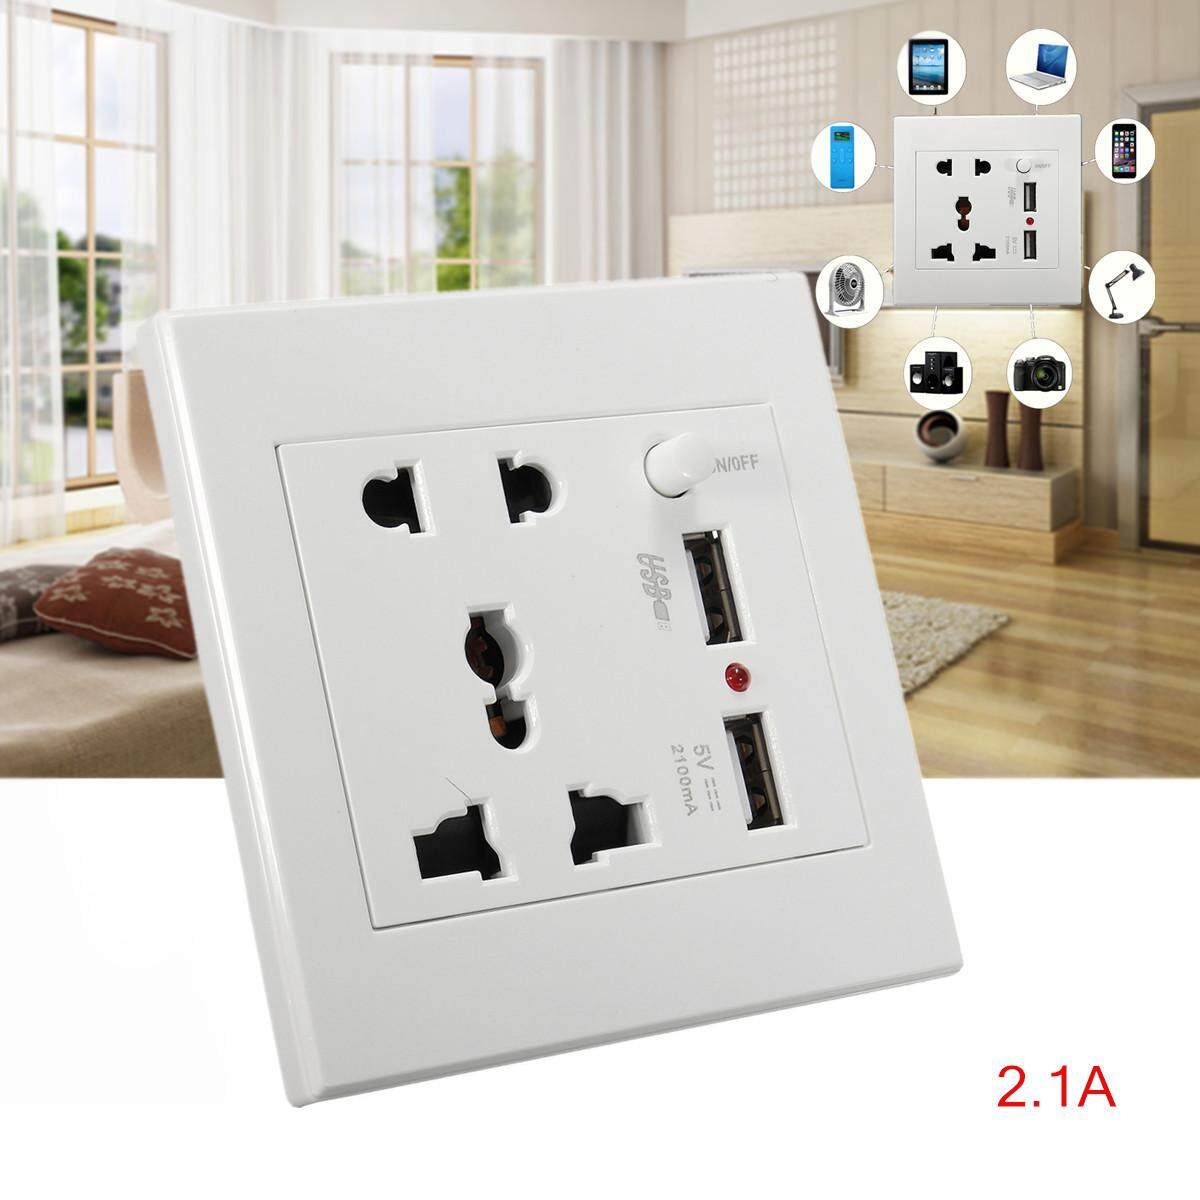 10PK USA Dual USB Port Wall Charger Socket Socket Power Adapter Outlet Panel